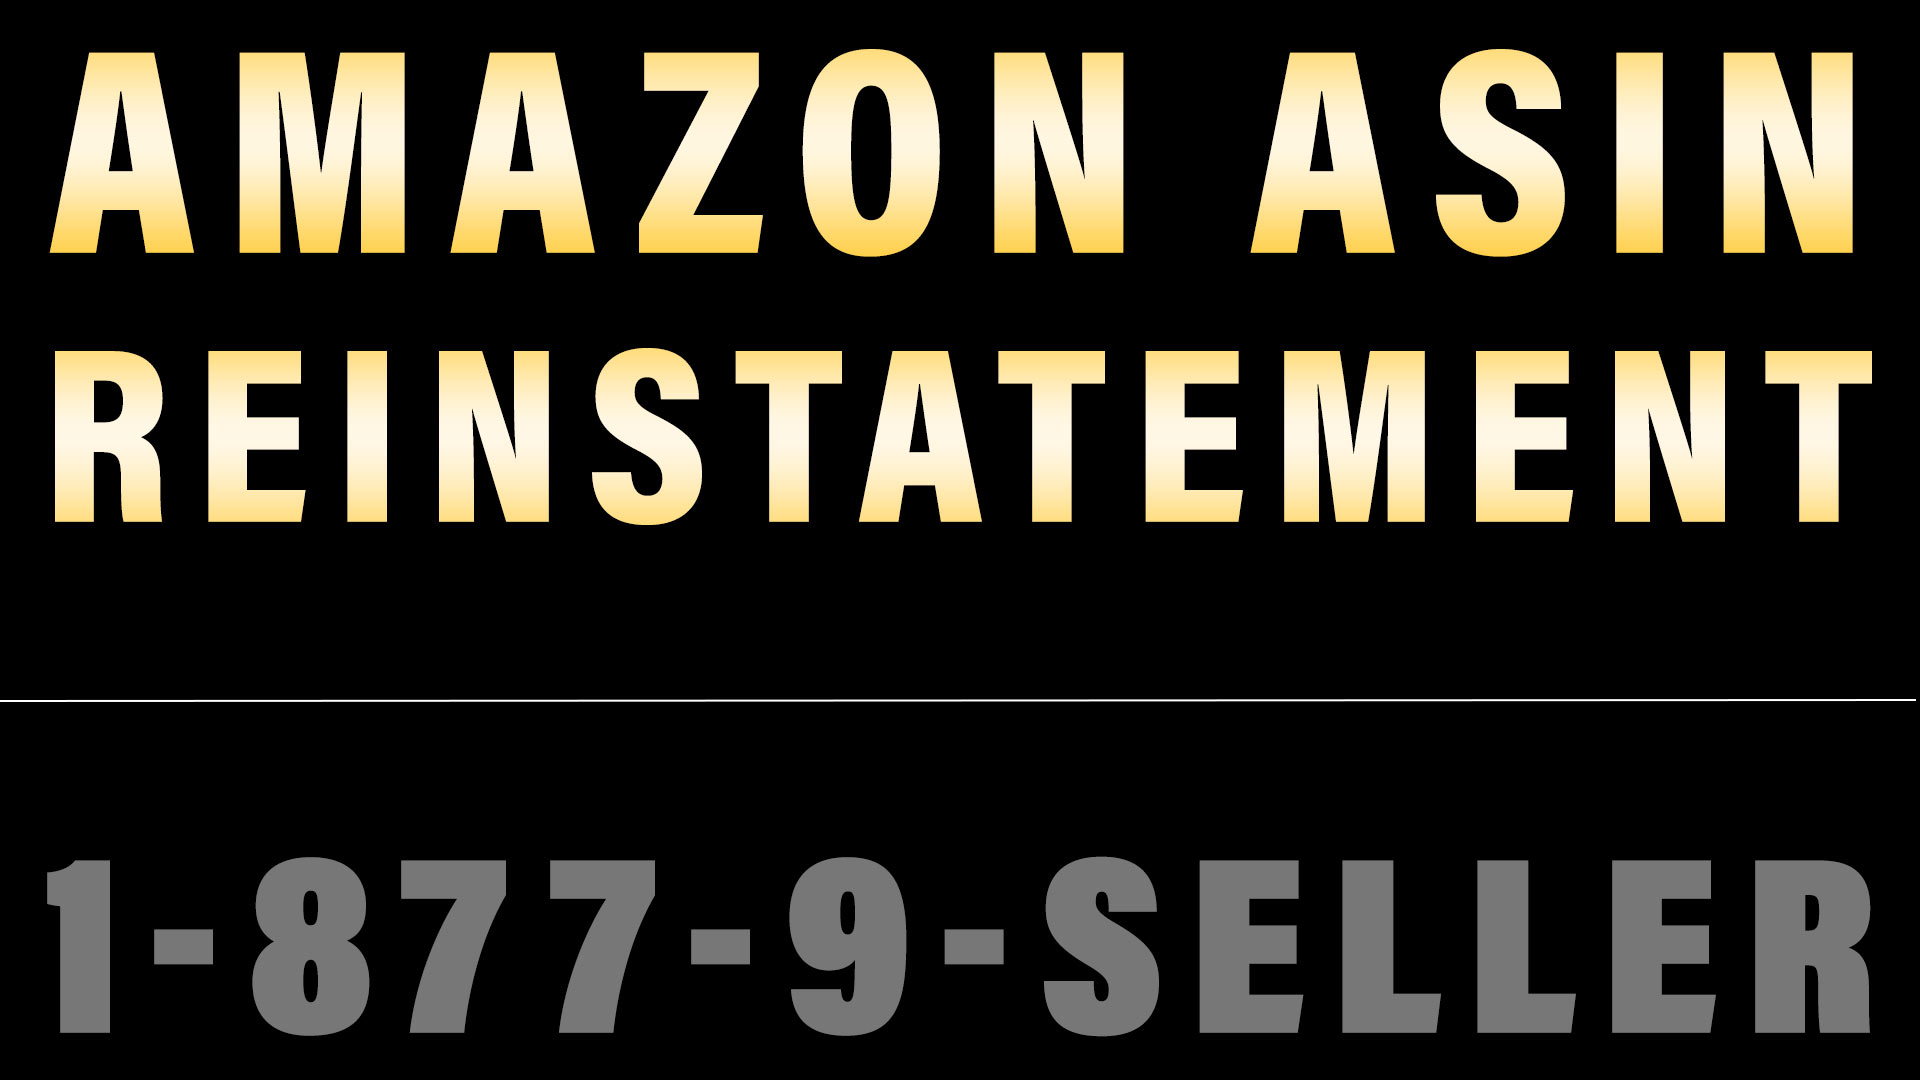 Suspended Amazon ASIN Reinstatement